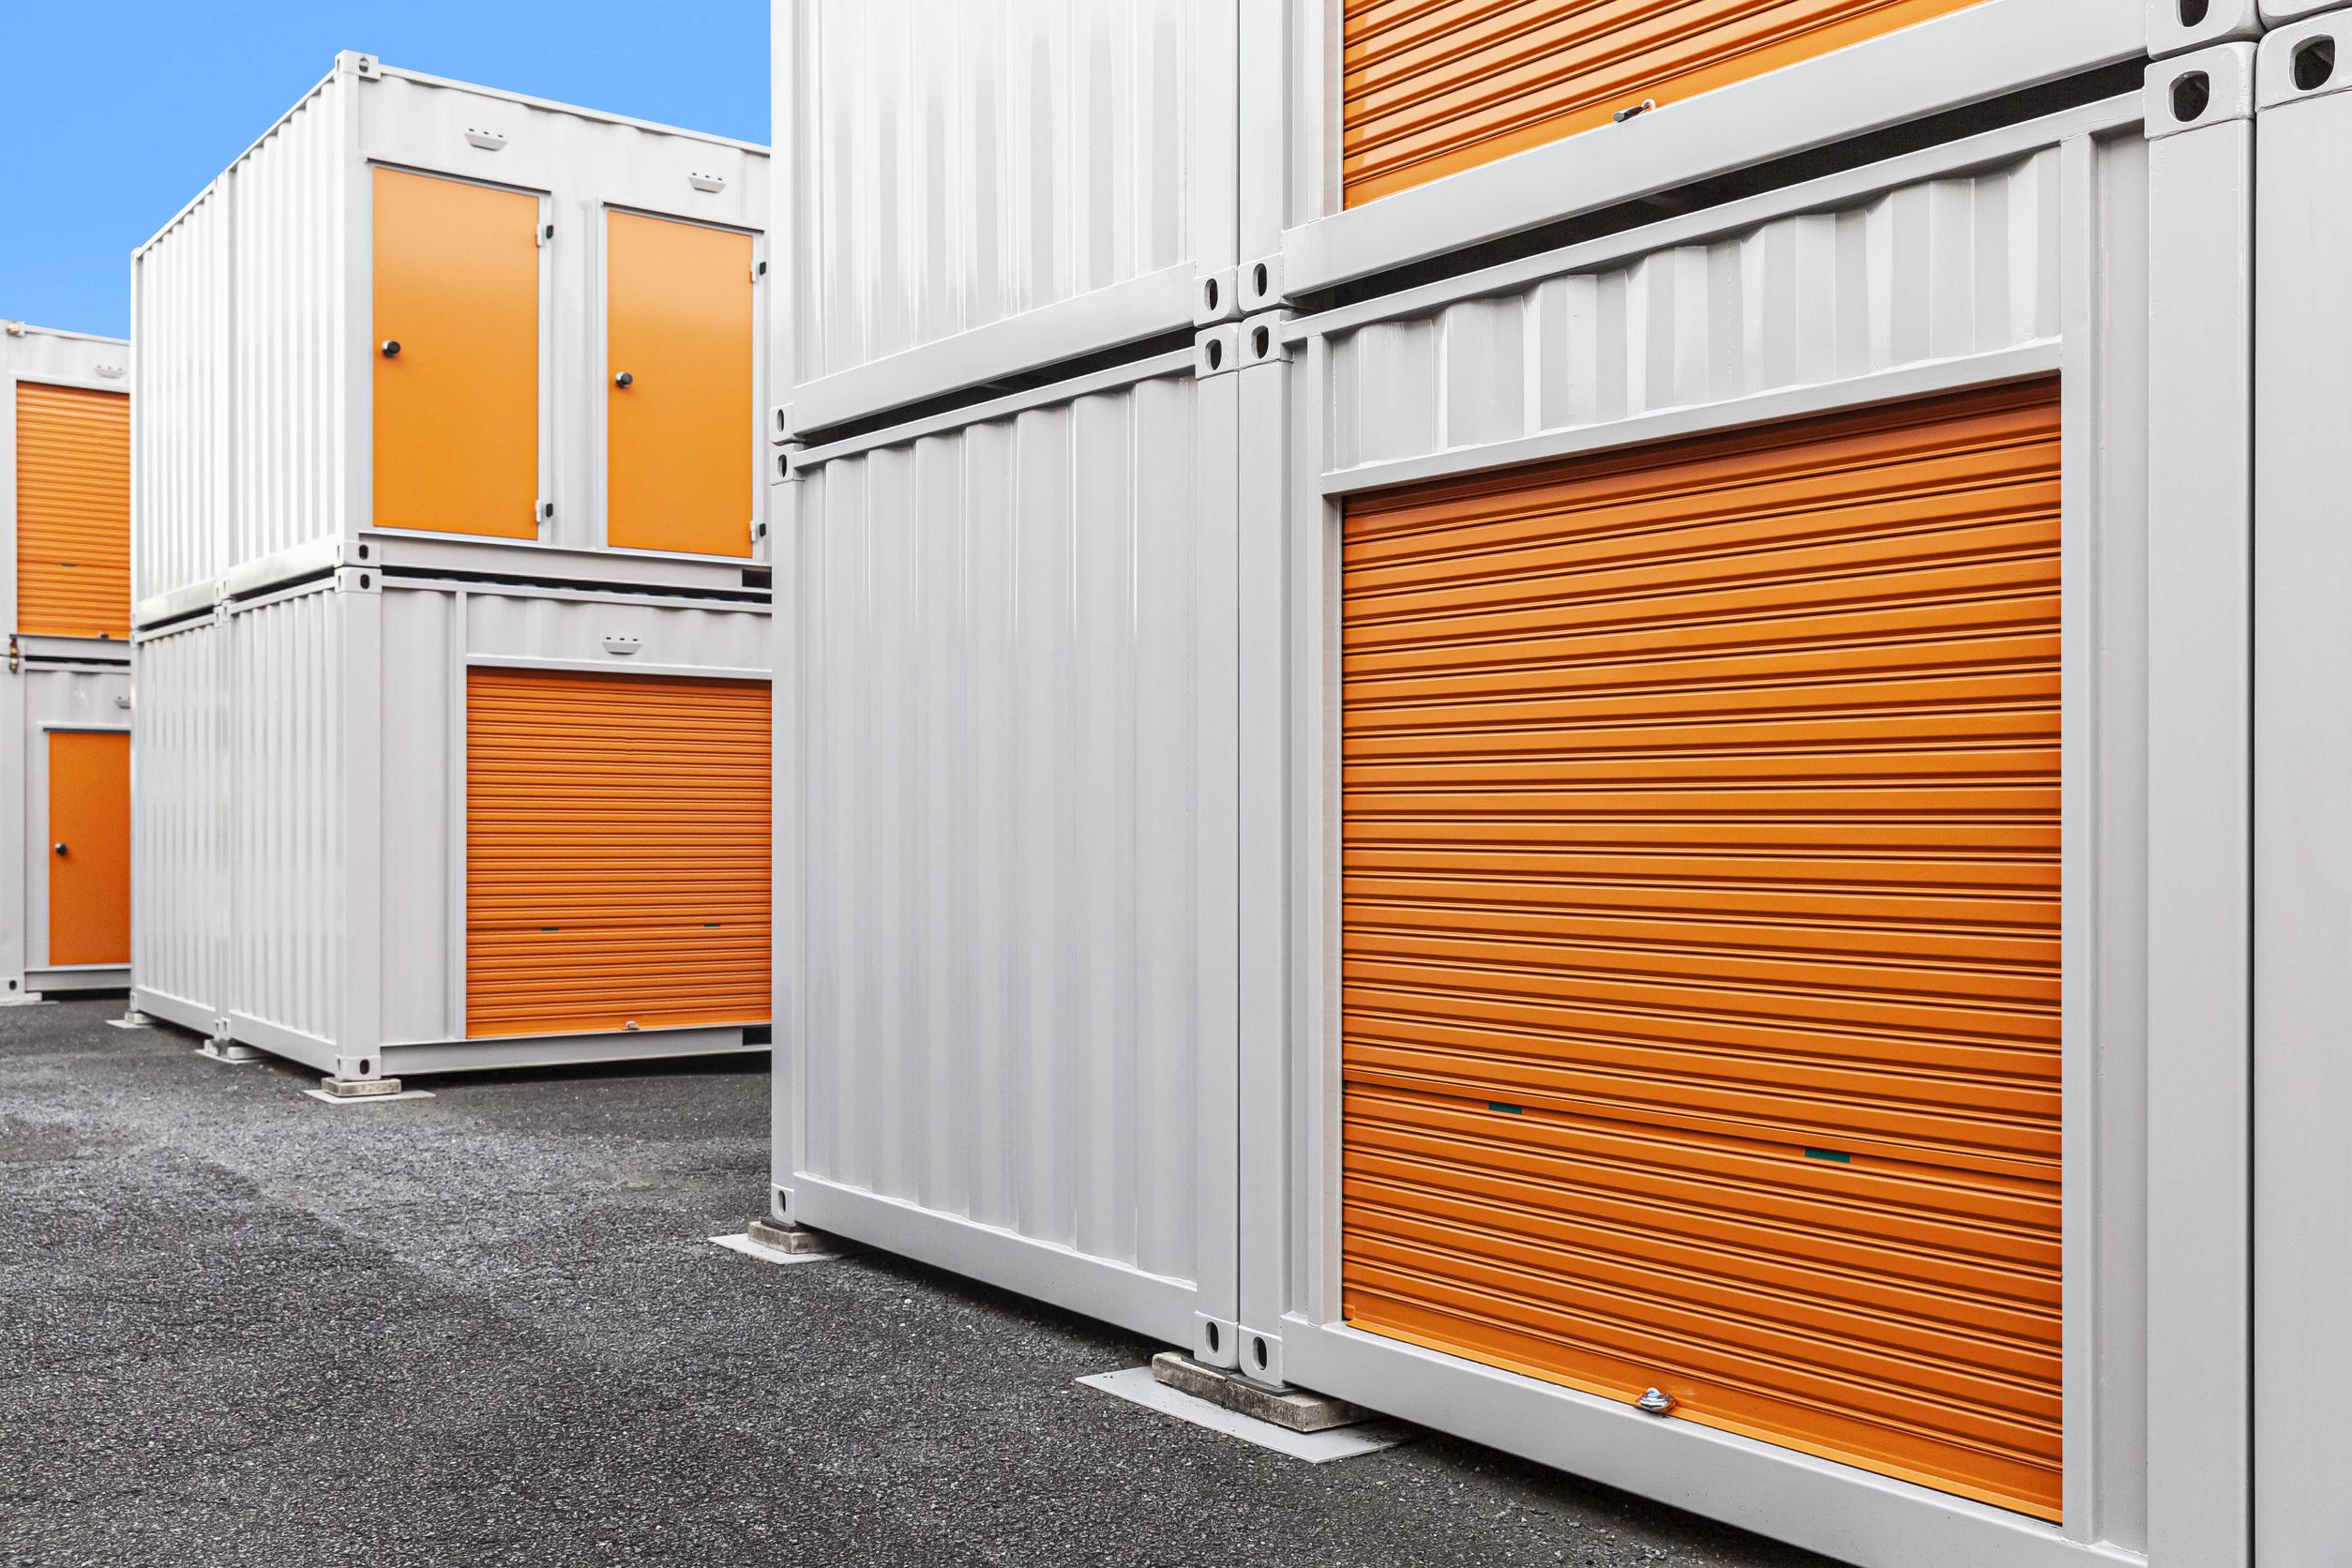 Mistakes to Avoid When Renting a Storage Container